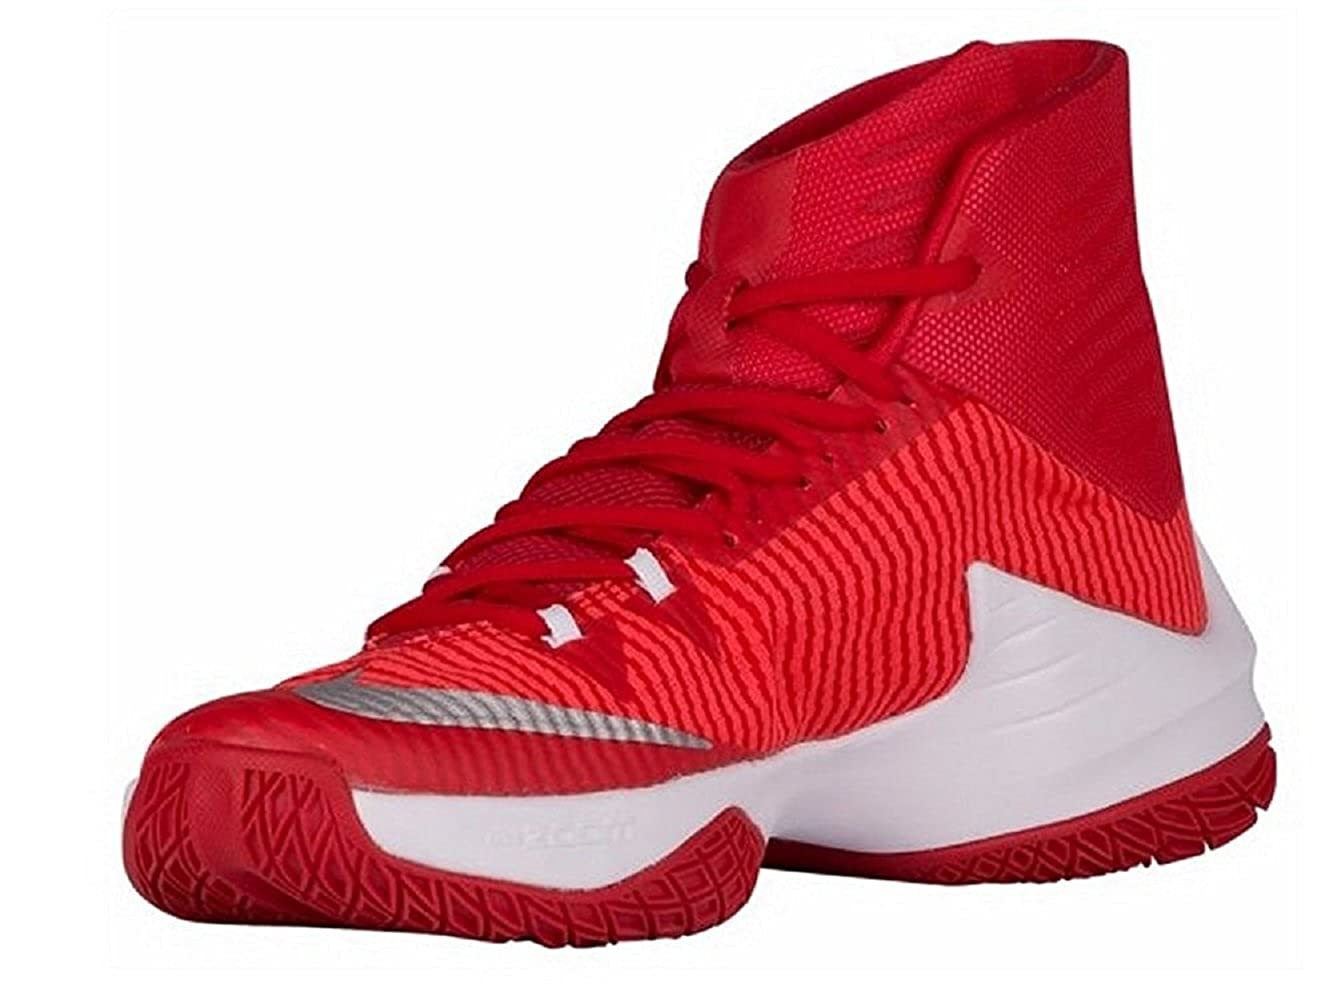 hot sale online df78d 12168 Amazon.com   Nike Zoom Clearout Men s Basketball Shoes   Basketball